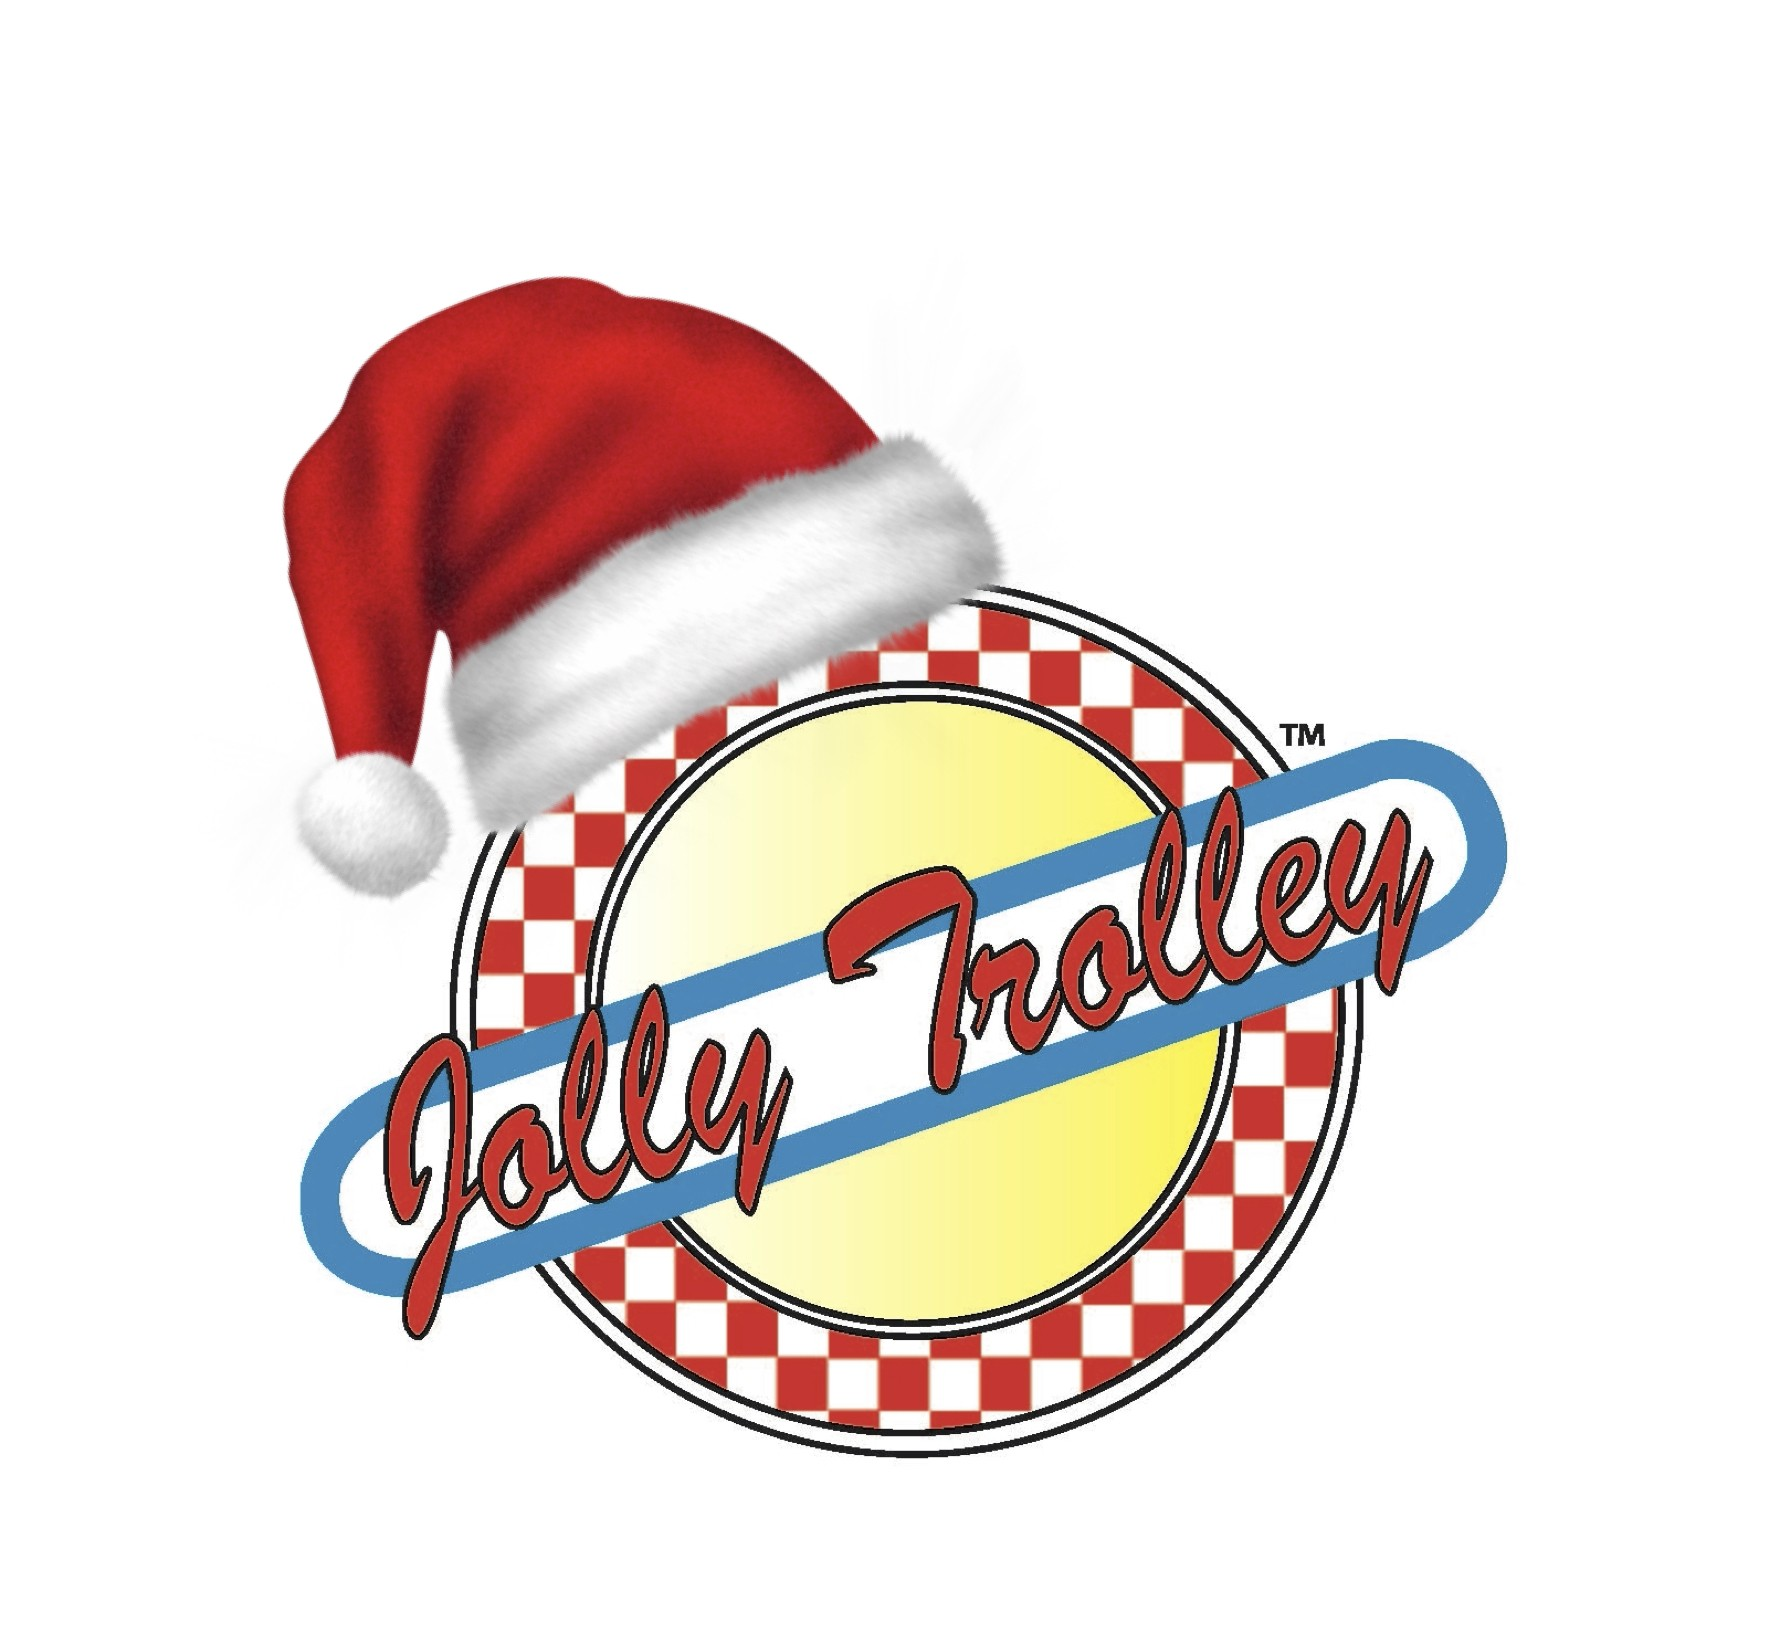 Jolly Trolley Holiday SHINE Tour